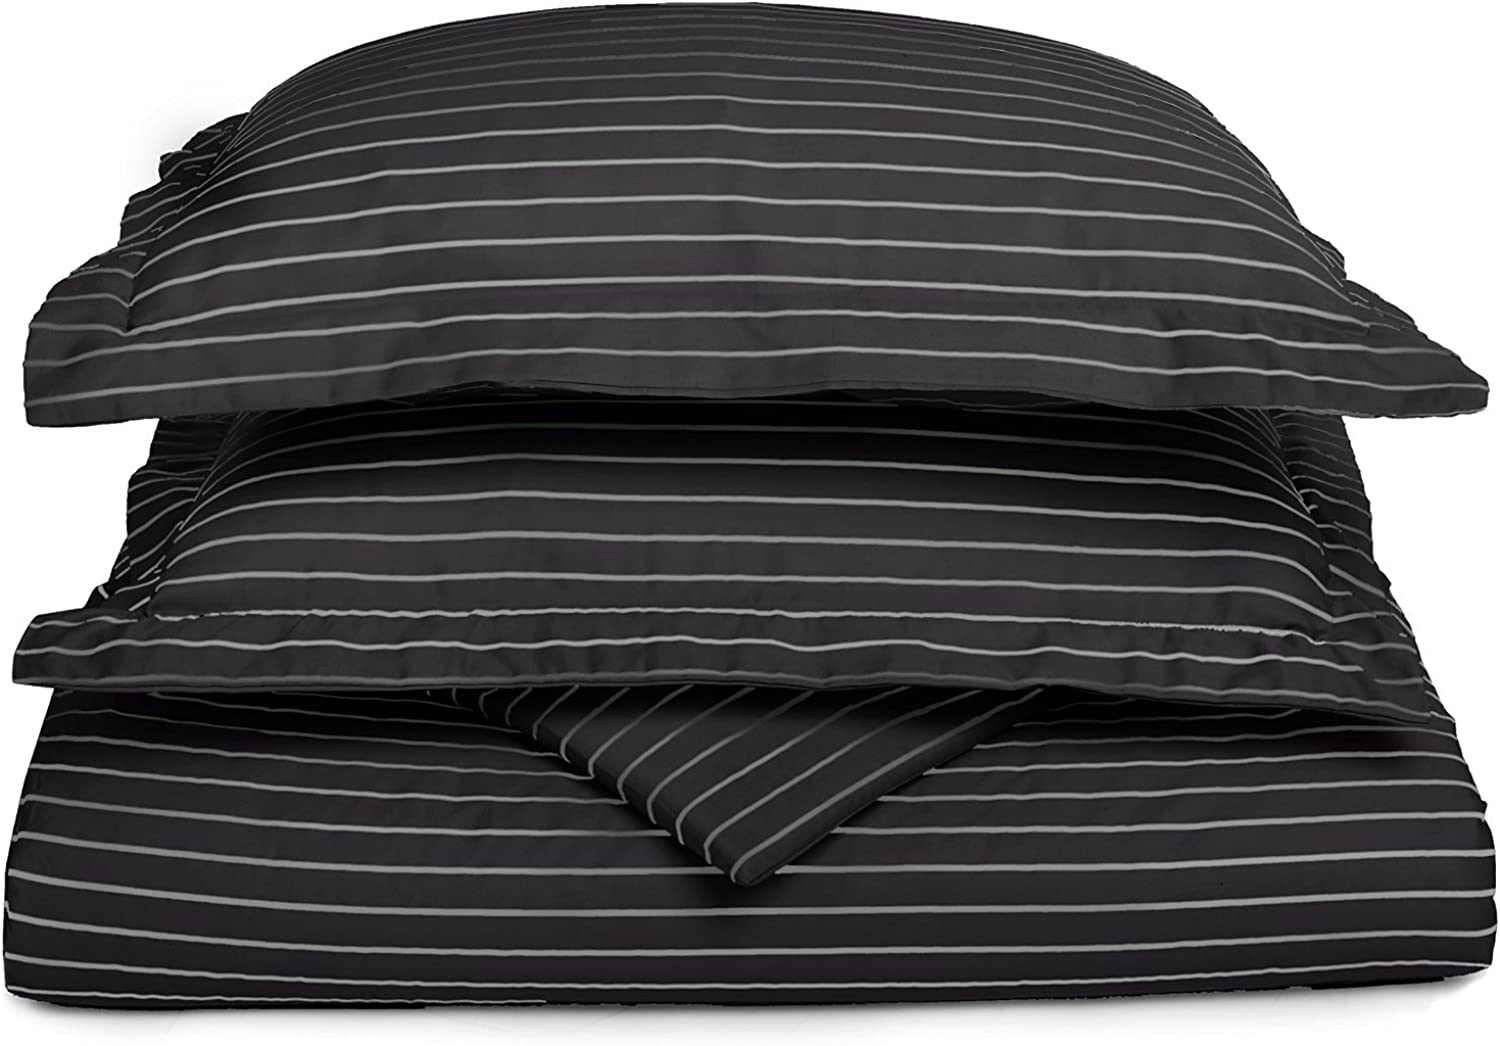 Cotton Blend 600 thread Count, Soft, Wrinkle Resistant, 3-Piece King California King Duvet Cover Set, Bahama Striped,  Black with White Stripes